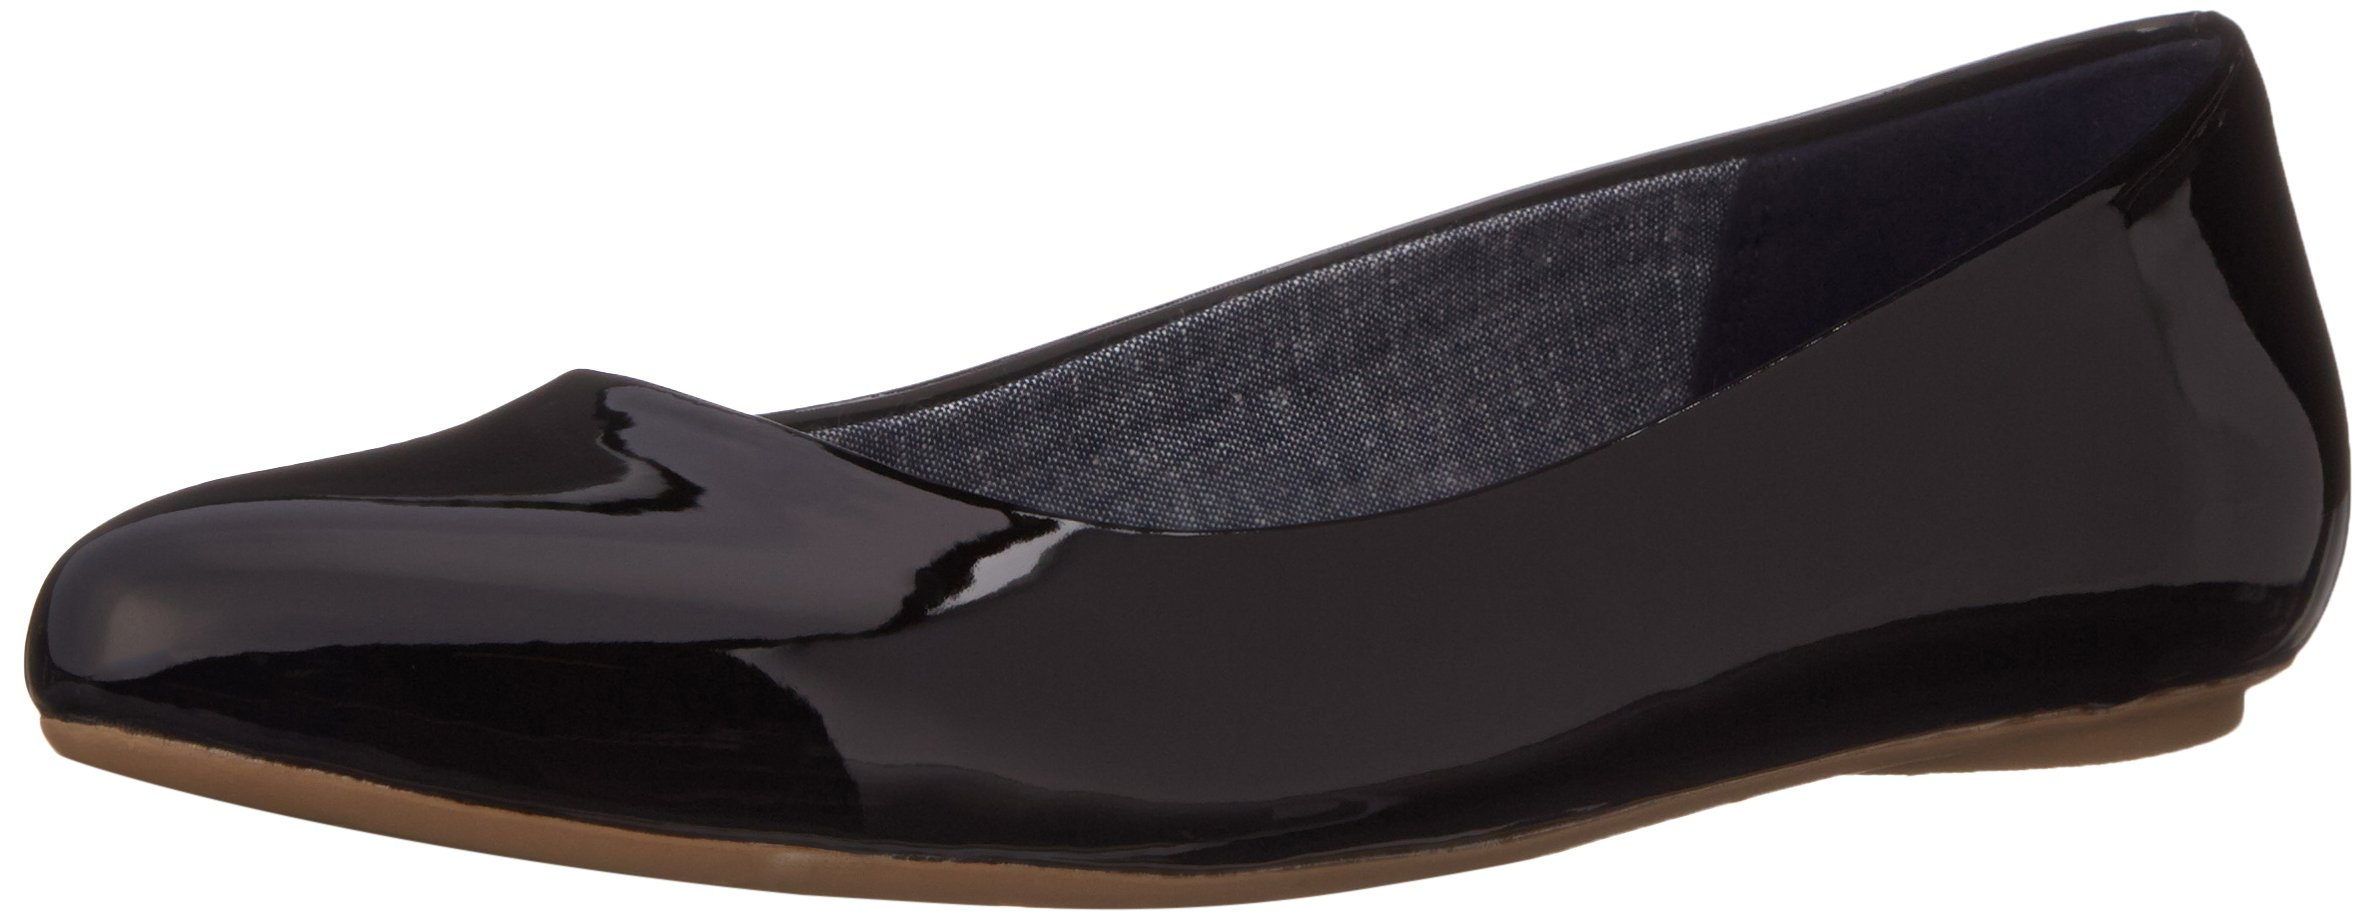 Dr. Scholl's Women's Black Patent Flat  Shoes - 9 C/D US